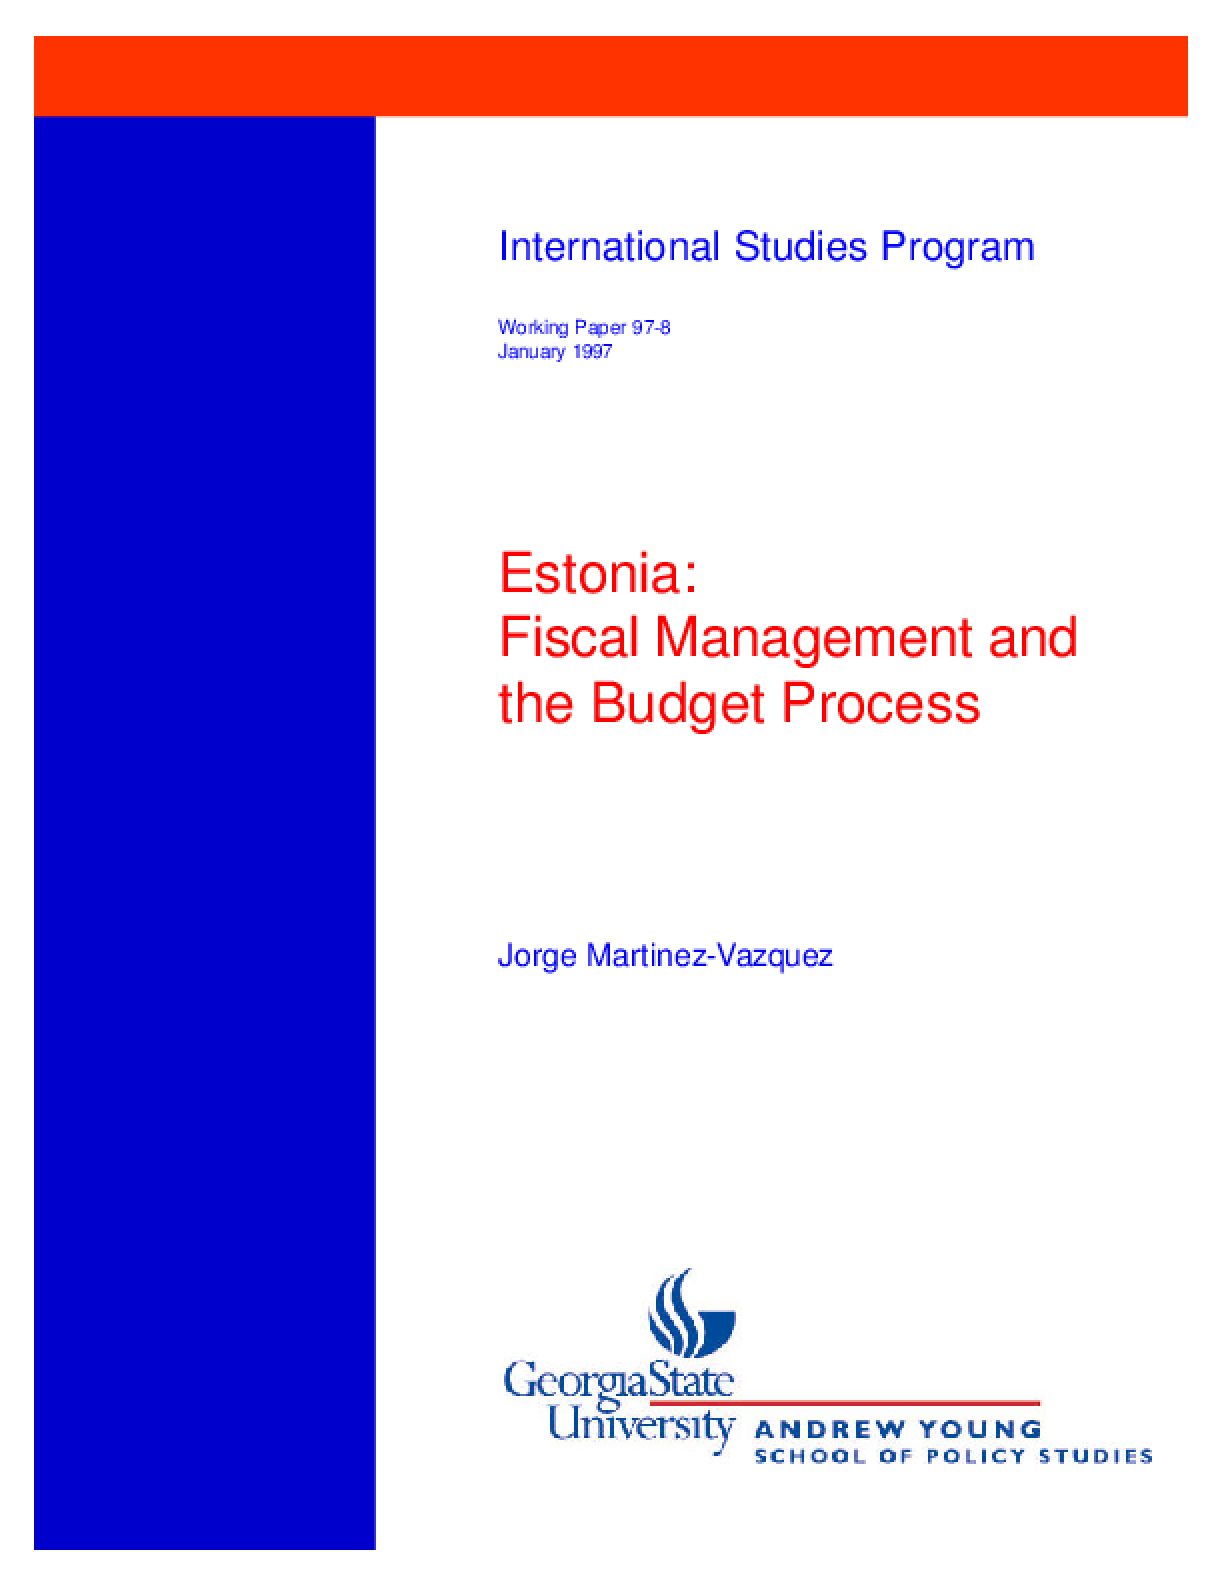 Estonia: Fiscal Management and the Budget Process